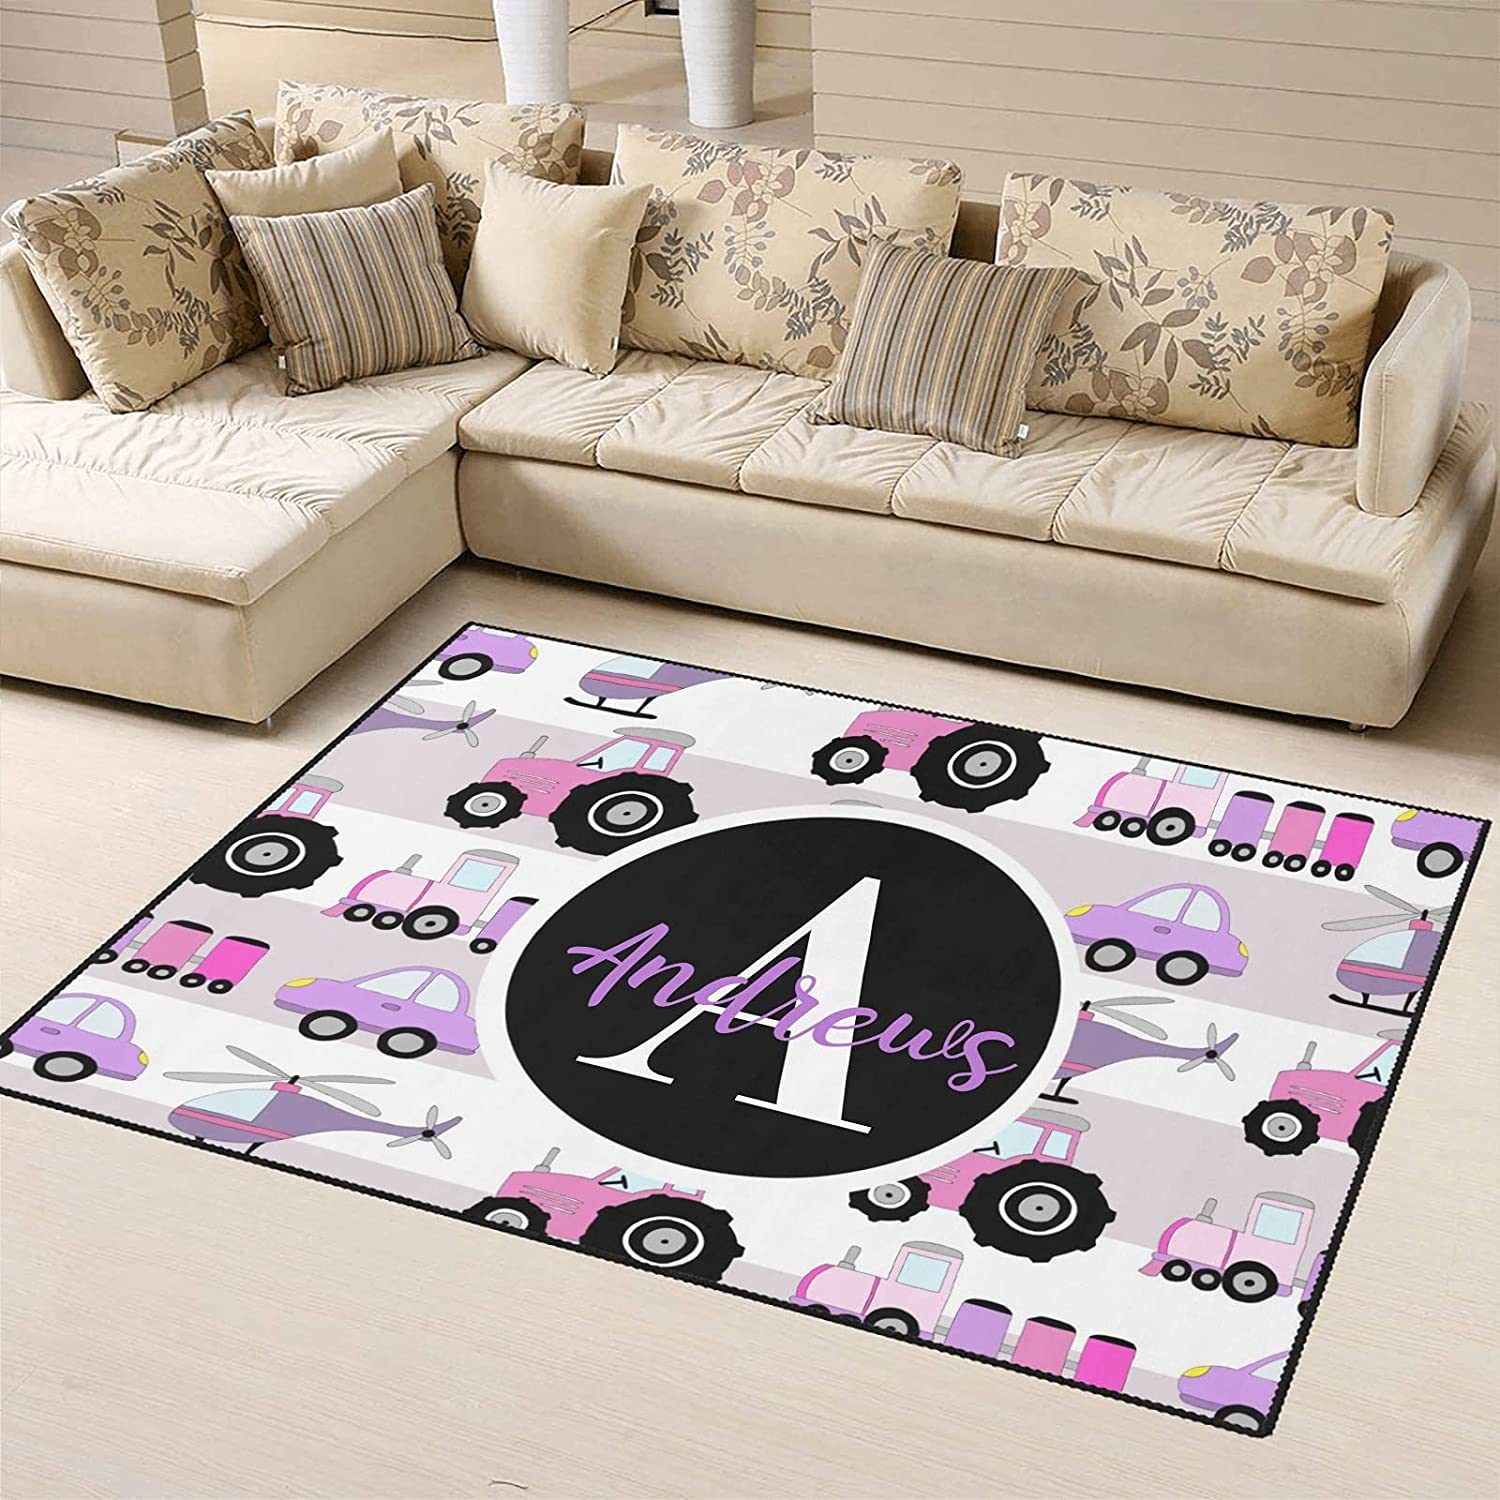 Personalized Manufacturer direct delivery Tractor Pattern Area Rug Ranking TOP19 Carpets Custom F with Name